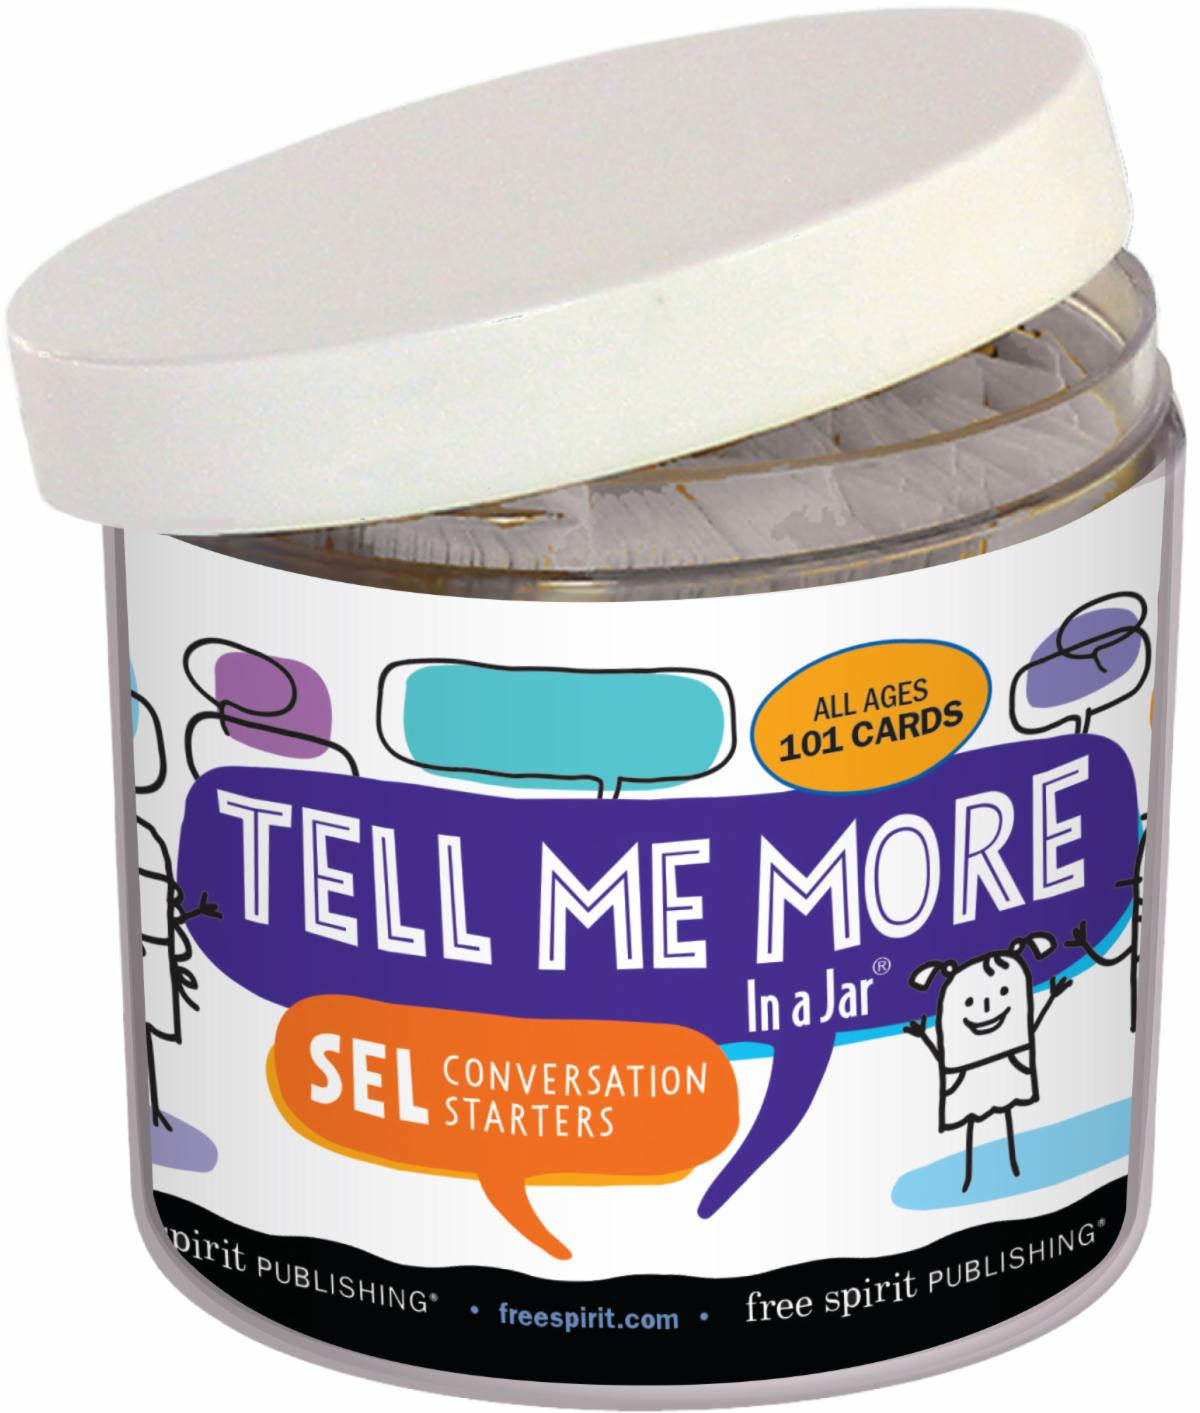 Tell Me More In a Jar